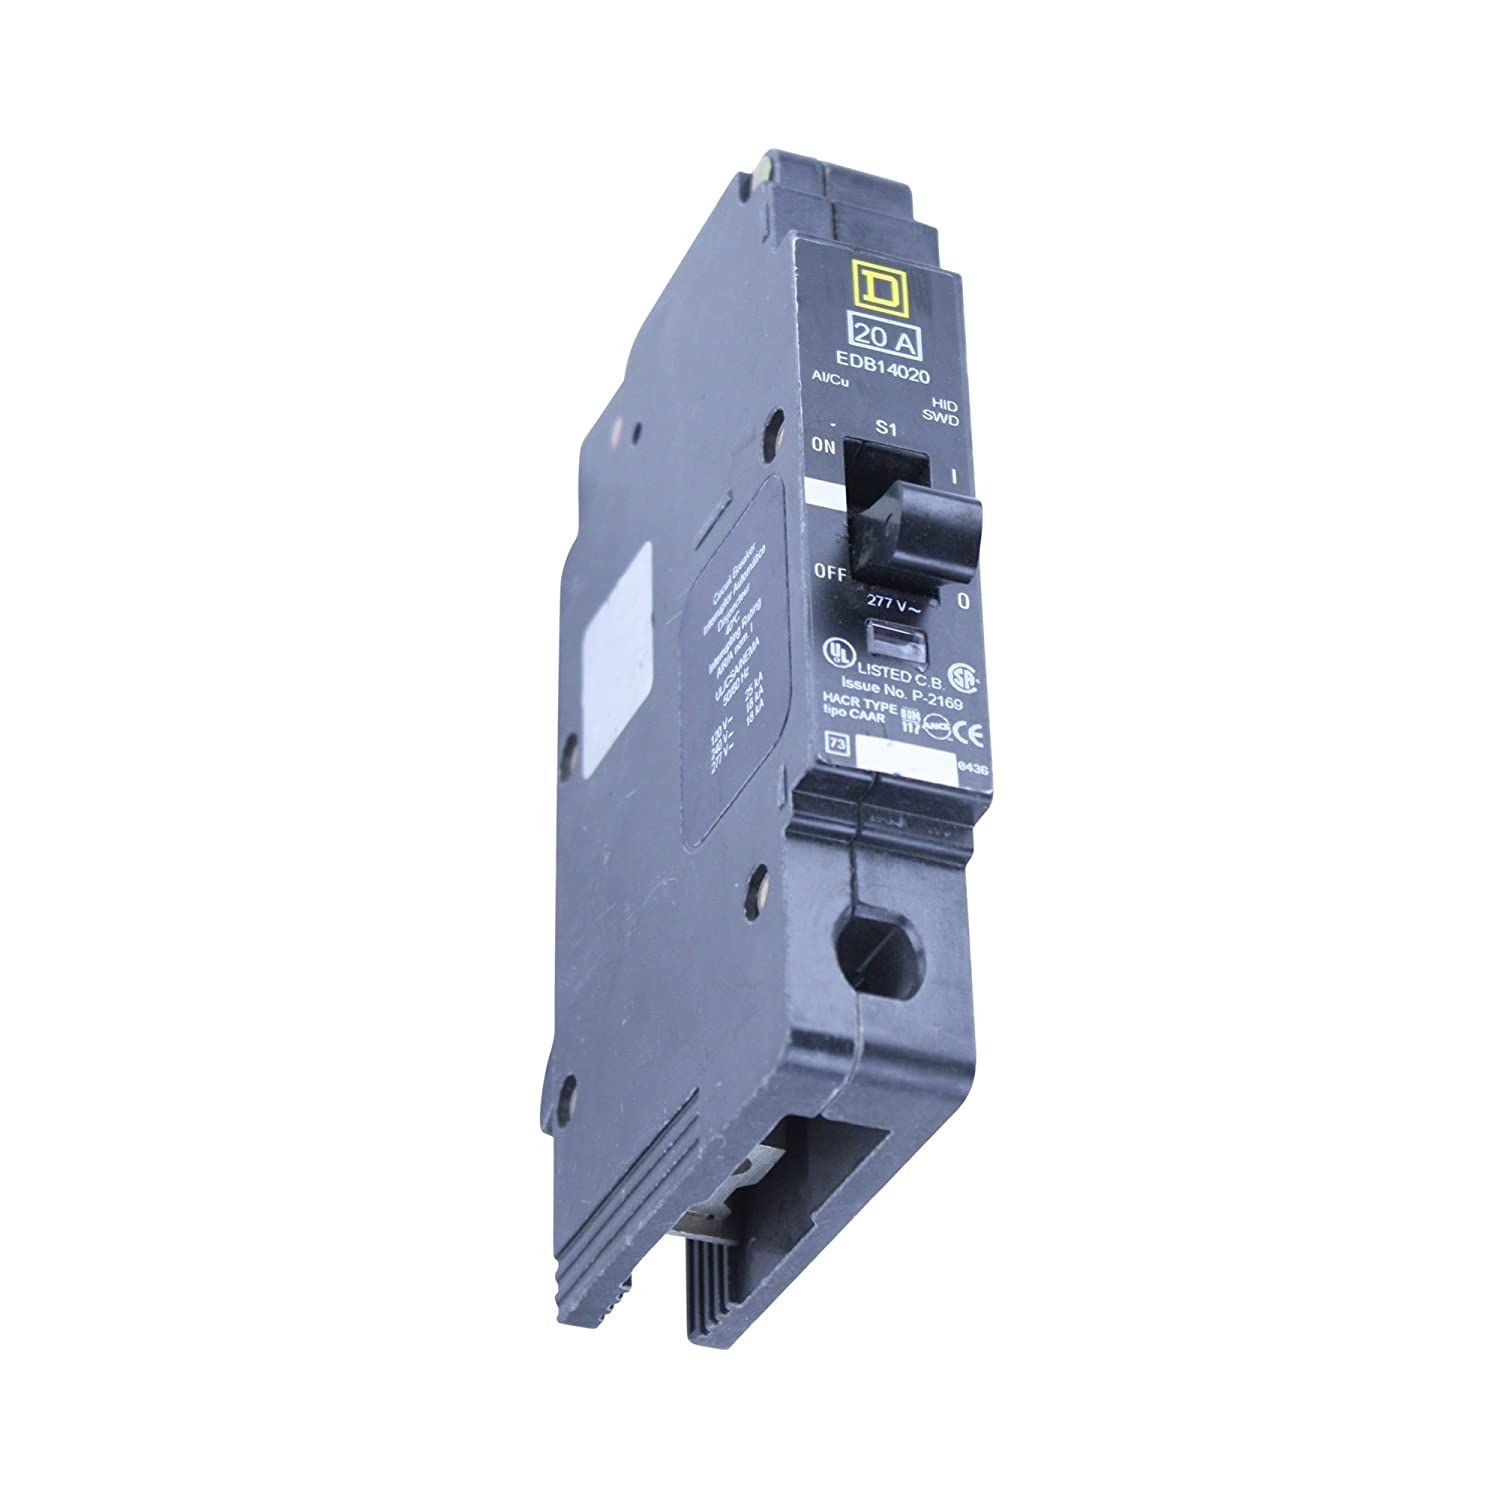 Schneider Electric Edb14020 Miniature Circuit Breaker 277 Volt 20 Types Video Different Of Breakers Ehow Amp 277v 20a